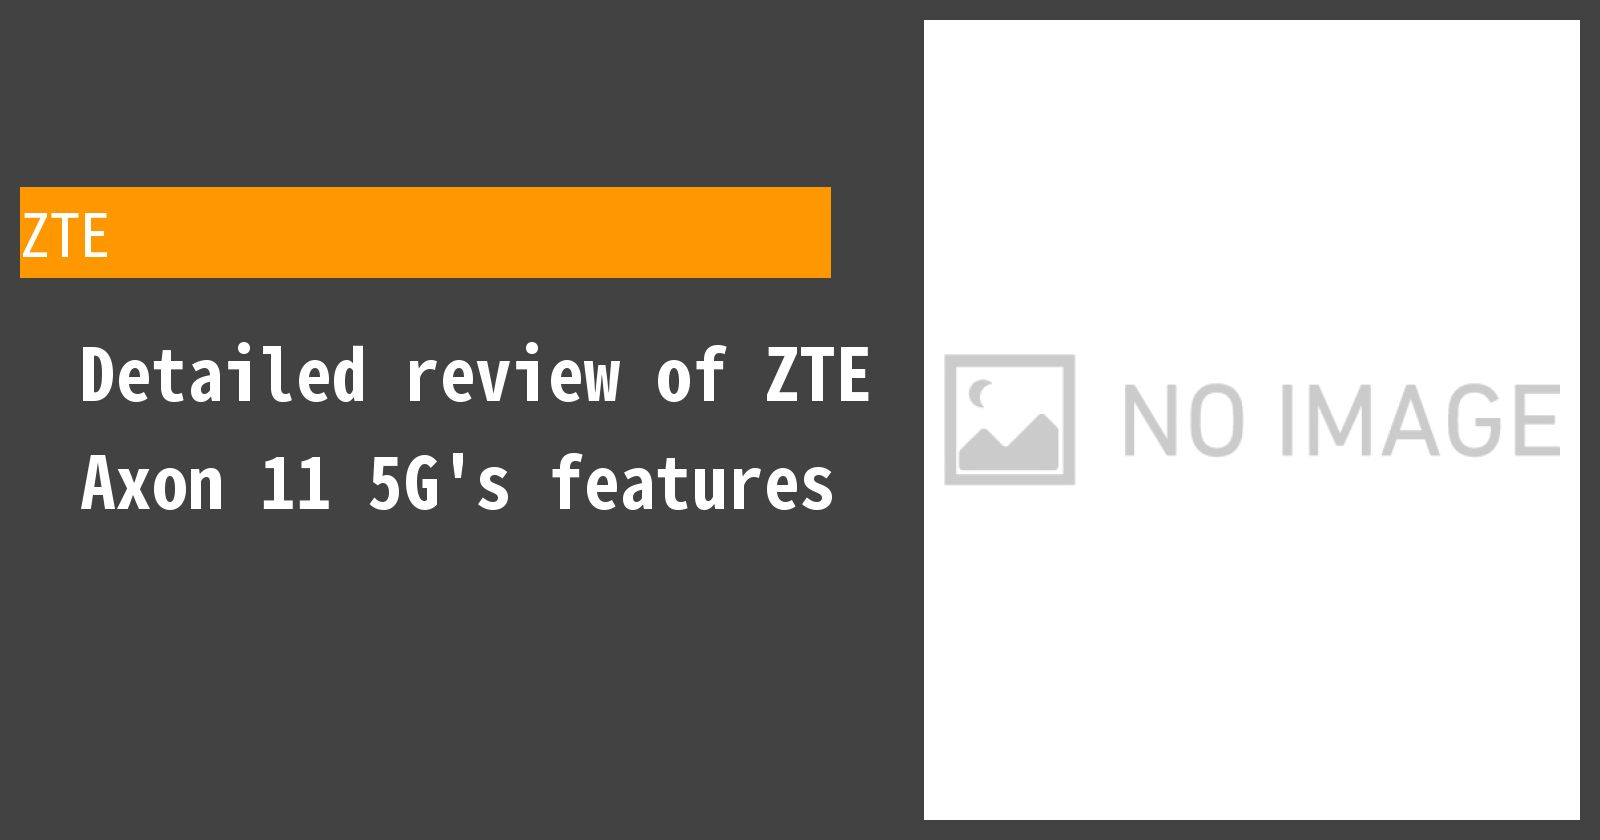 Detailed review of ZTE Axon 11 5G's features